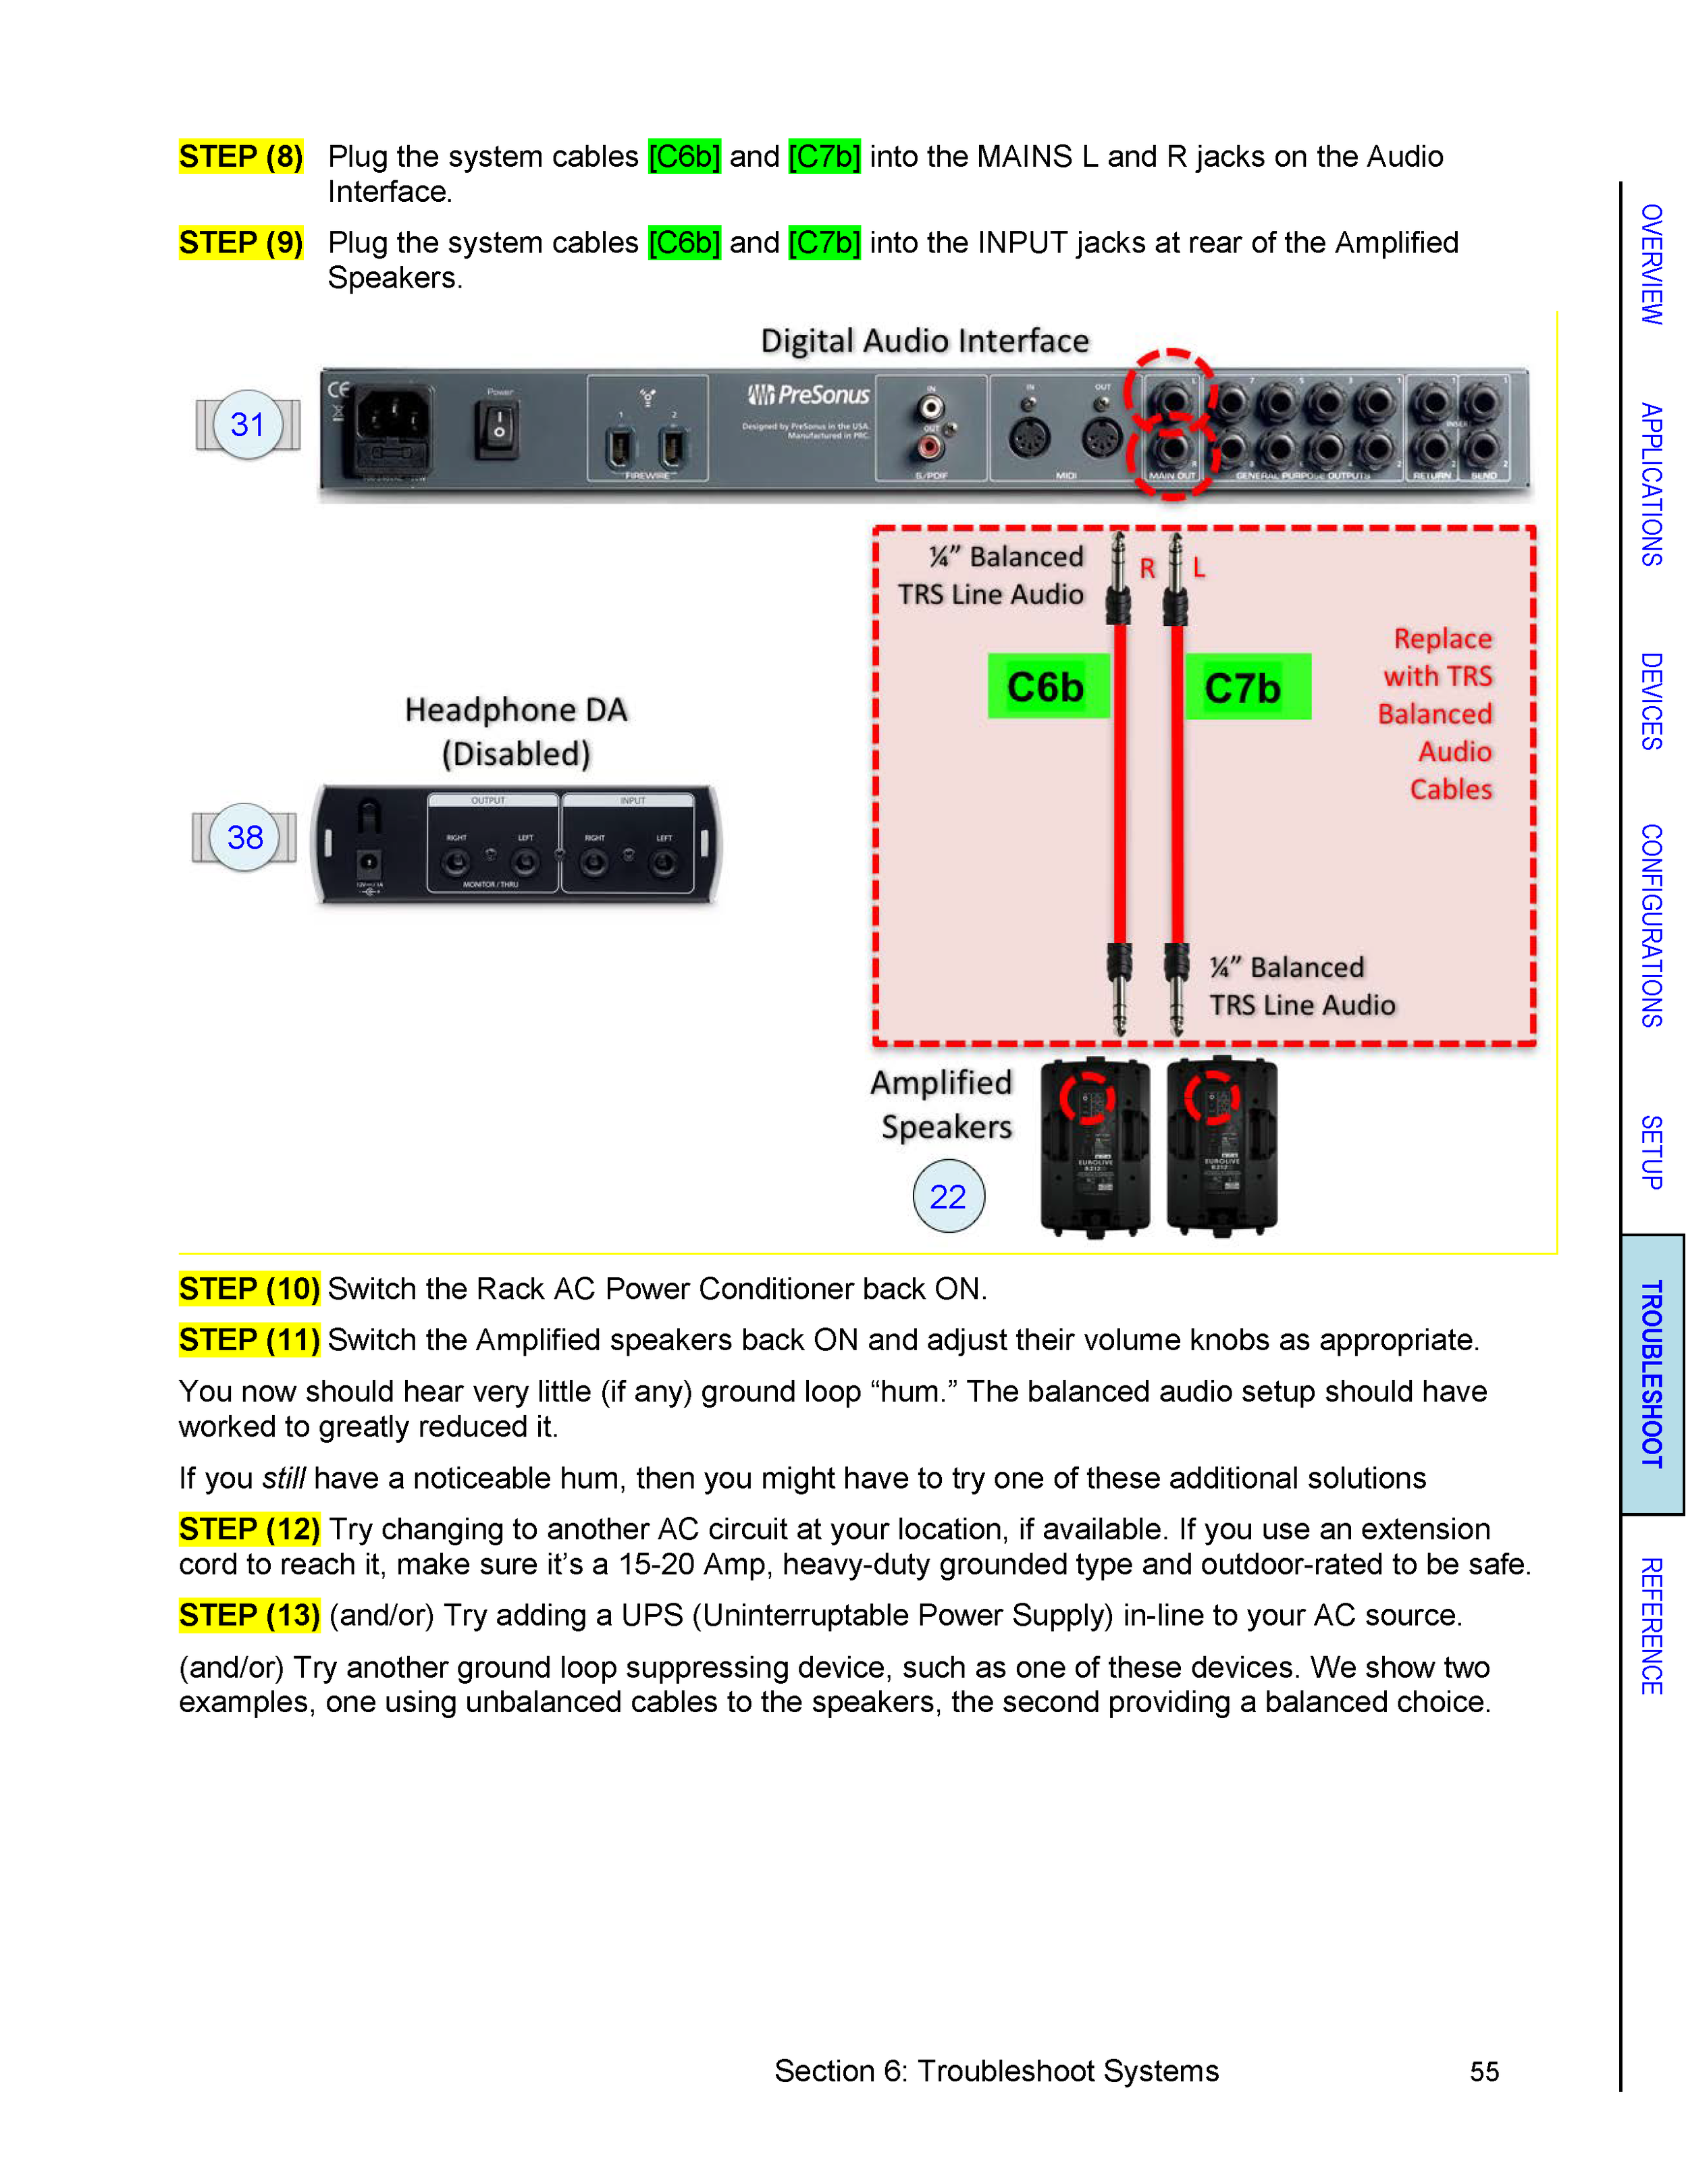 SpaceHarp_Systems_User_Guide_Oct-9th-2017_released_Page_55.png